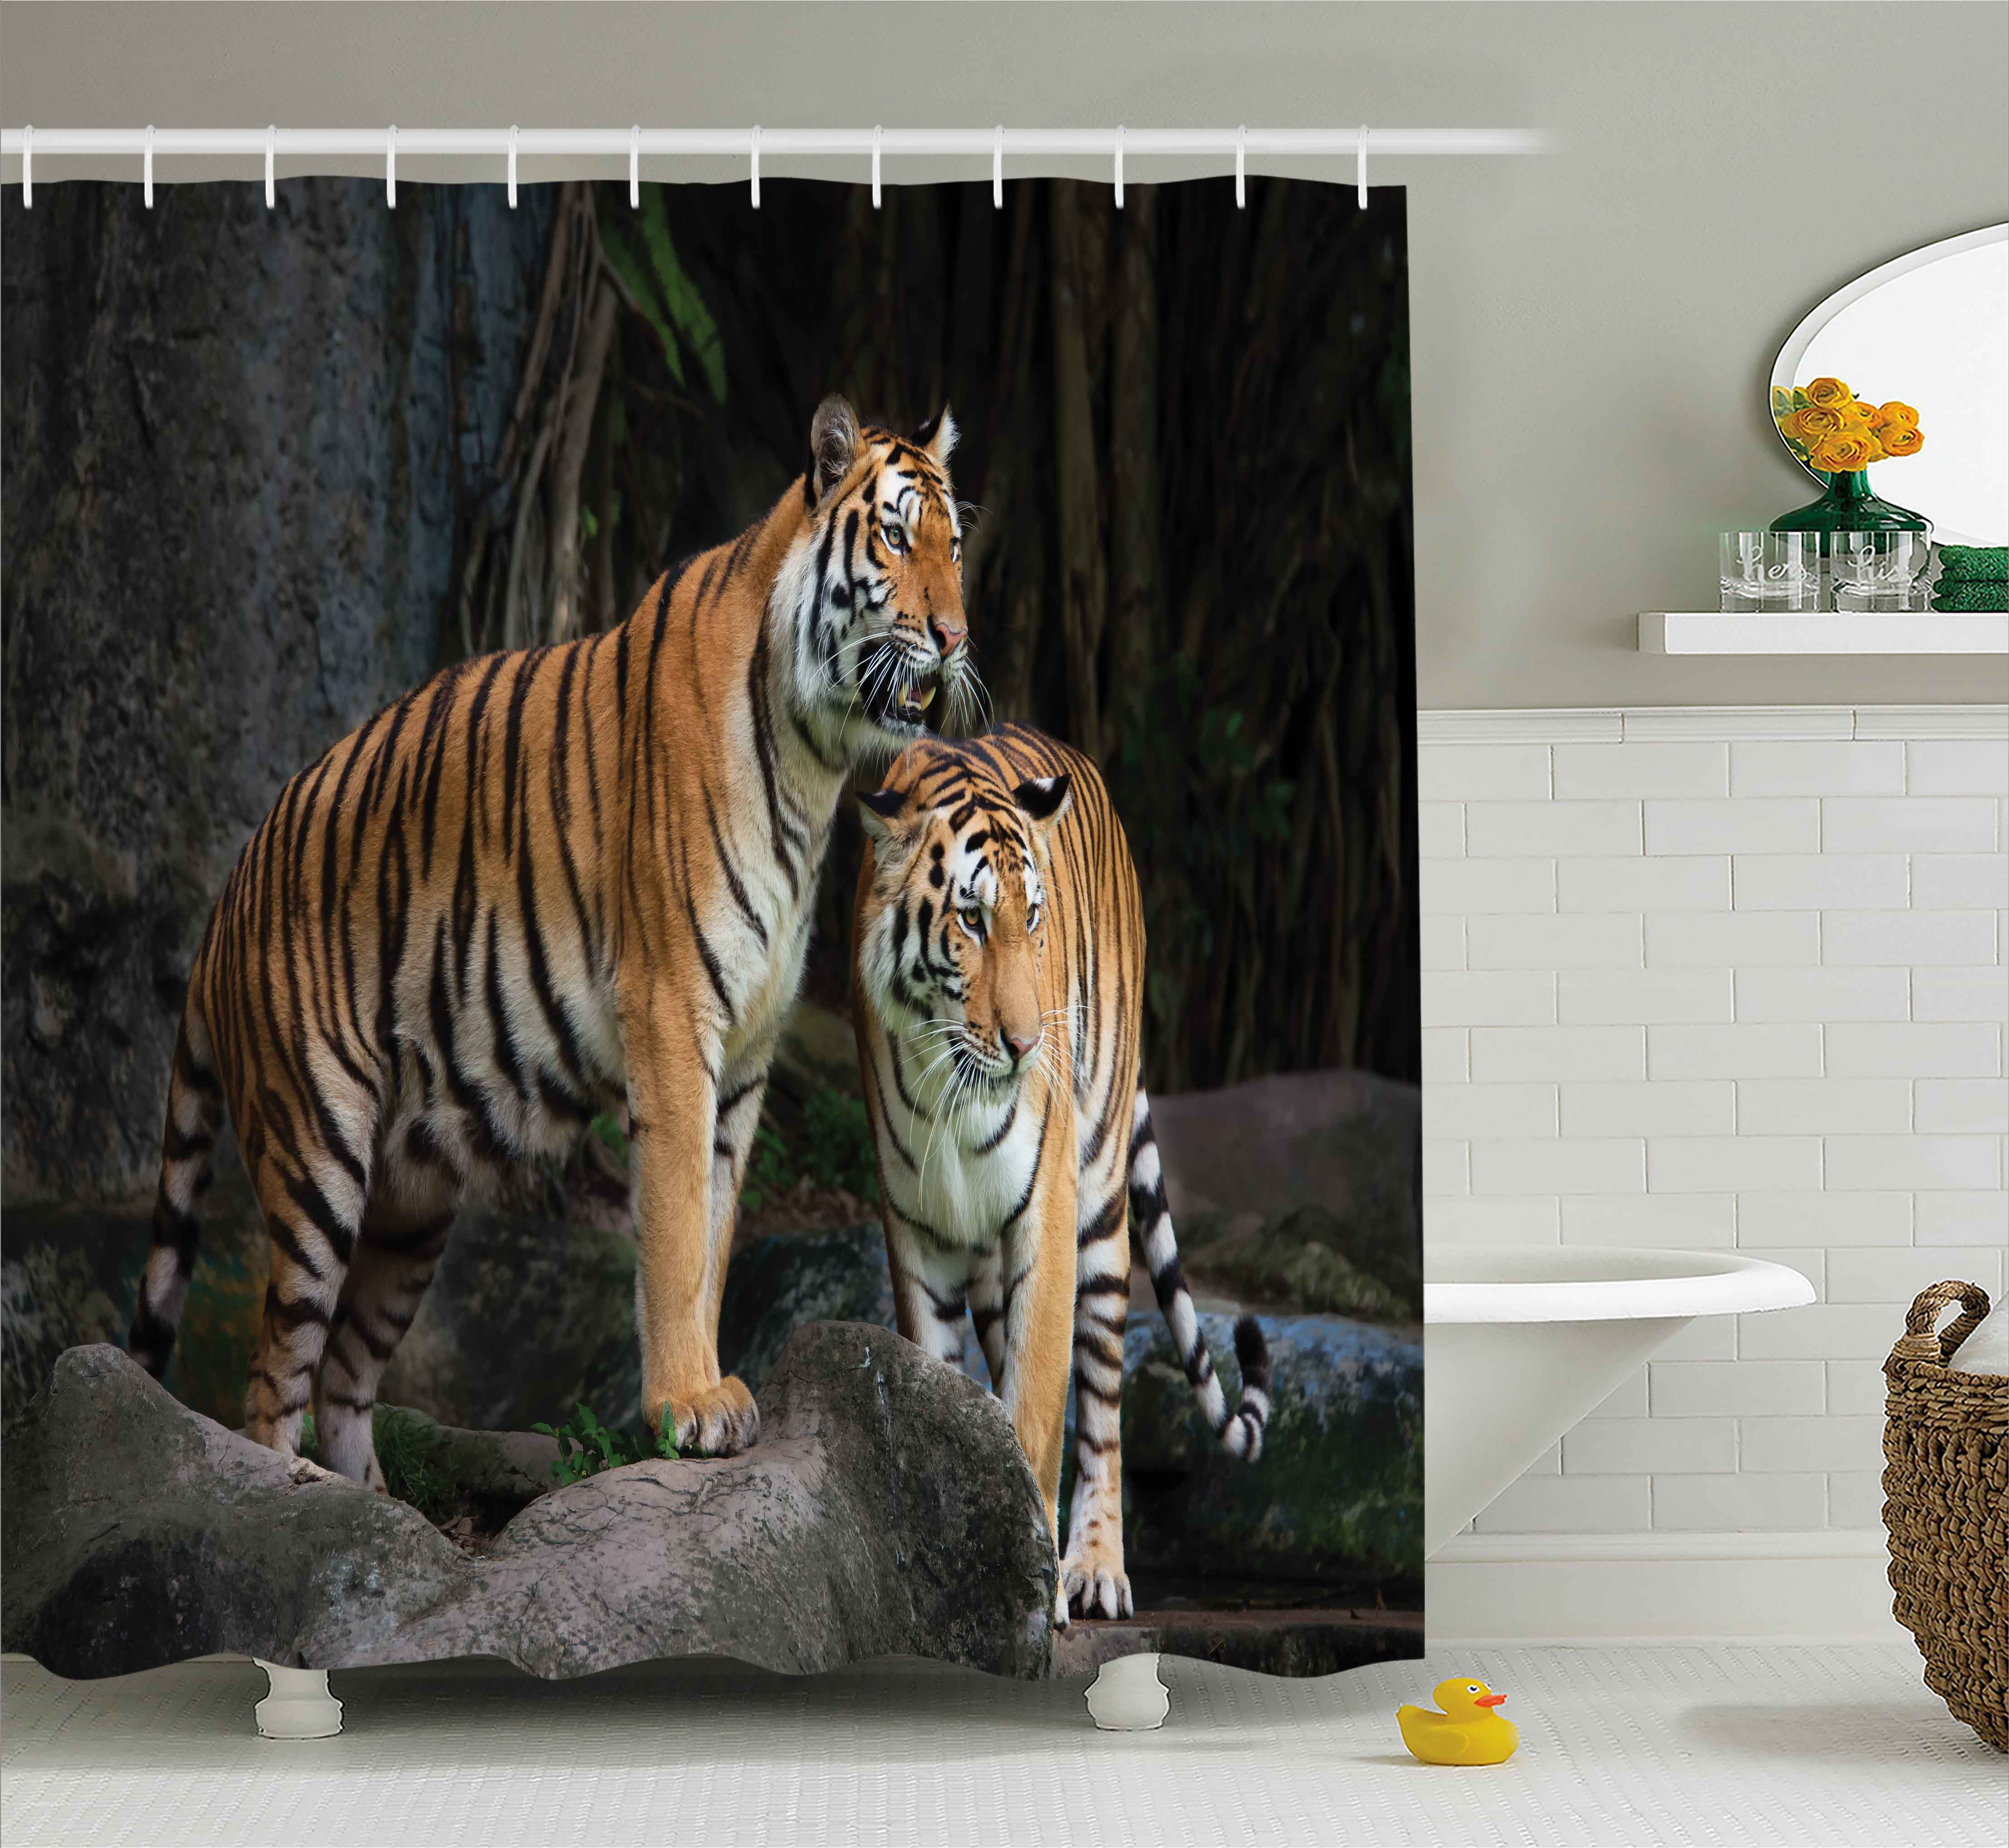 Animal Decor Shower Curtain, Tiger Couple In The Jungle On Big Rocks Image  Wild Cats